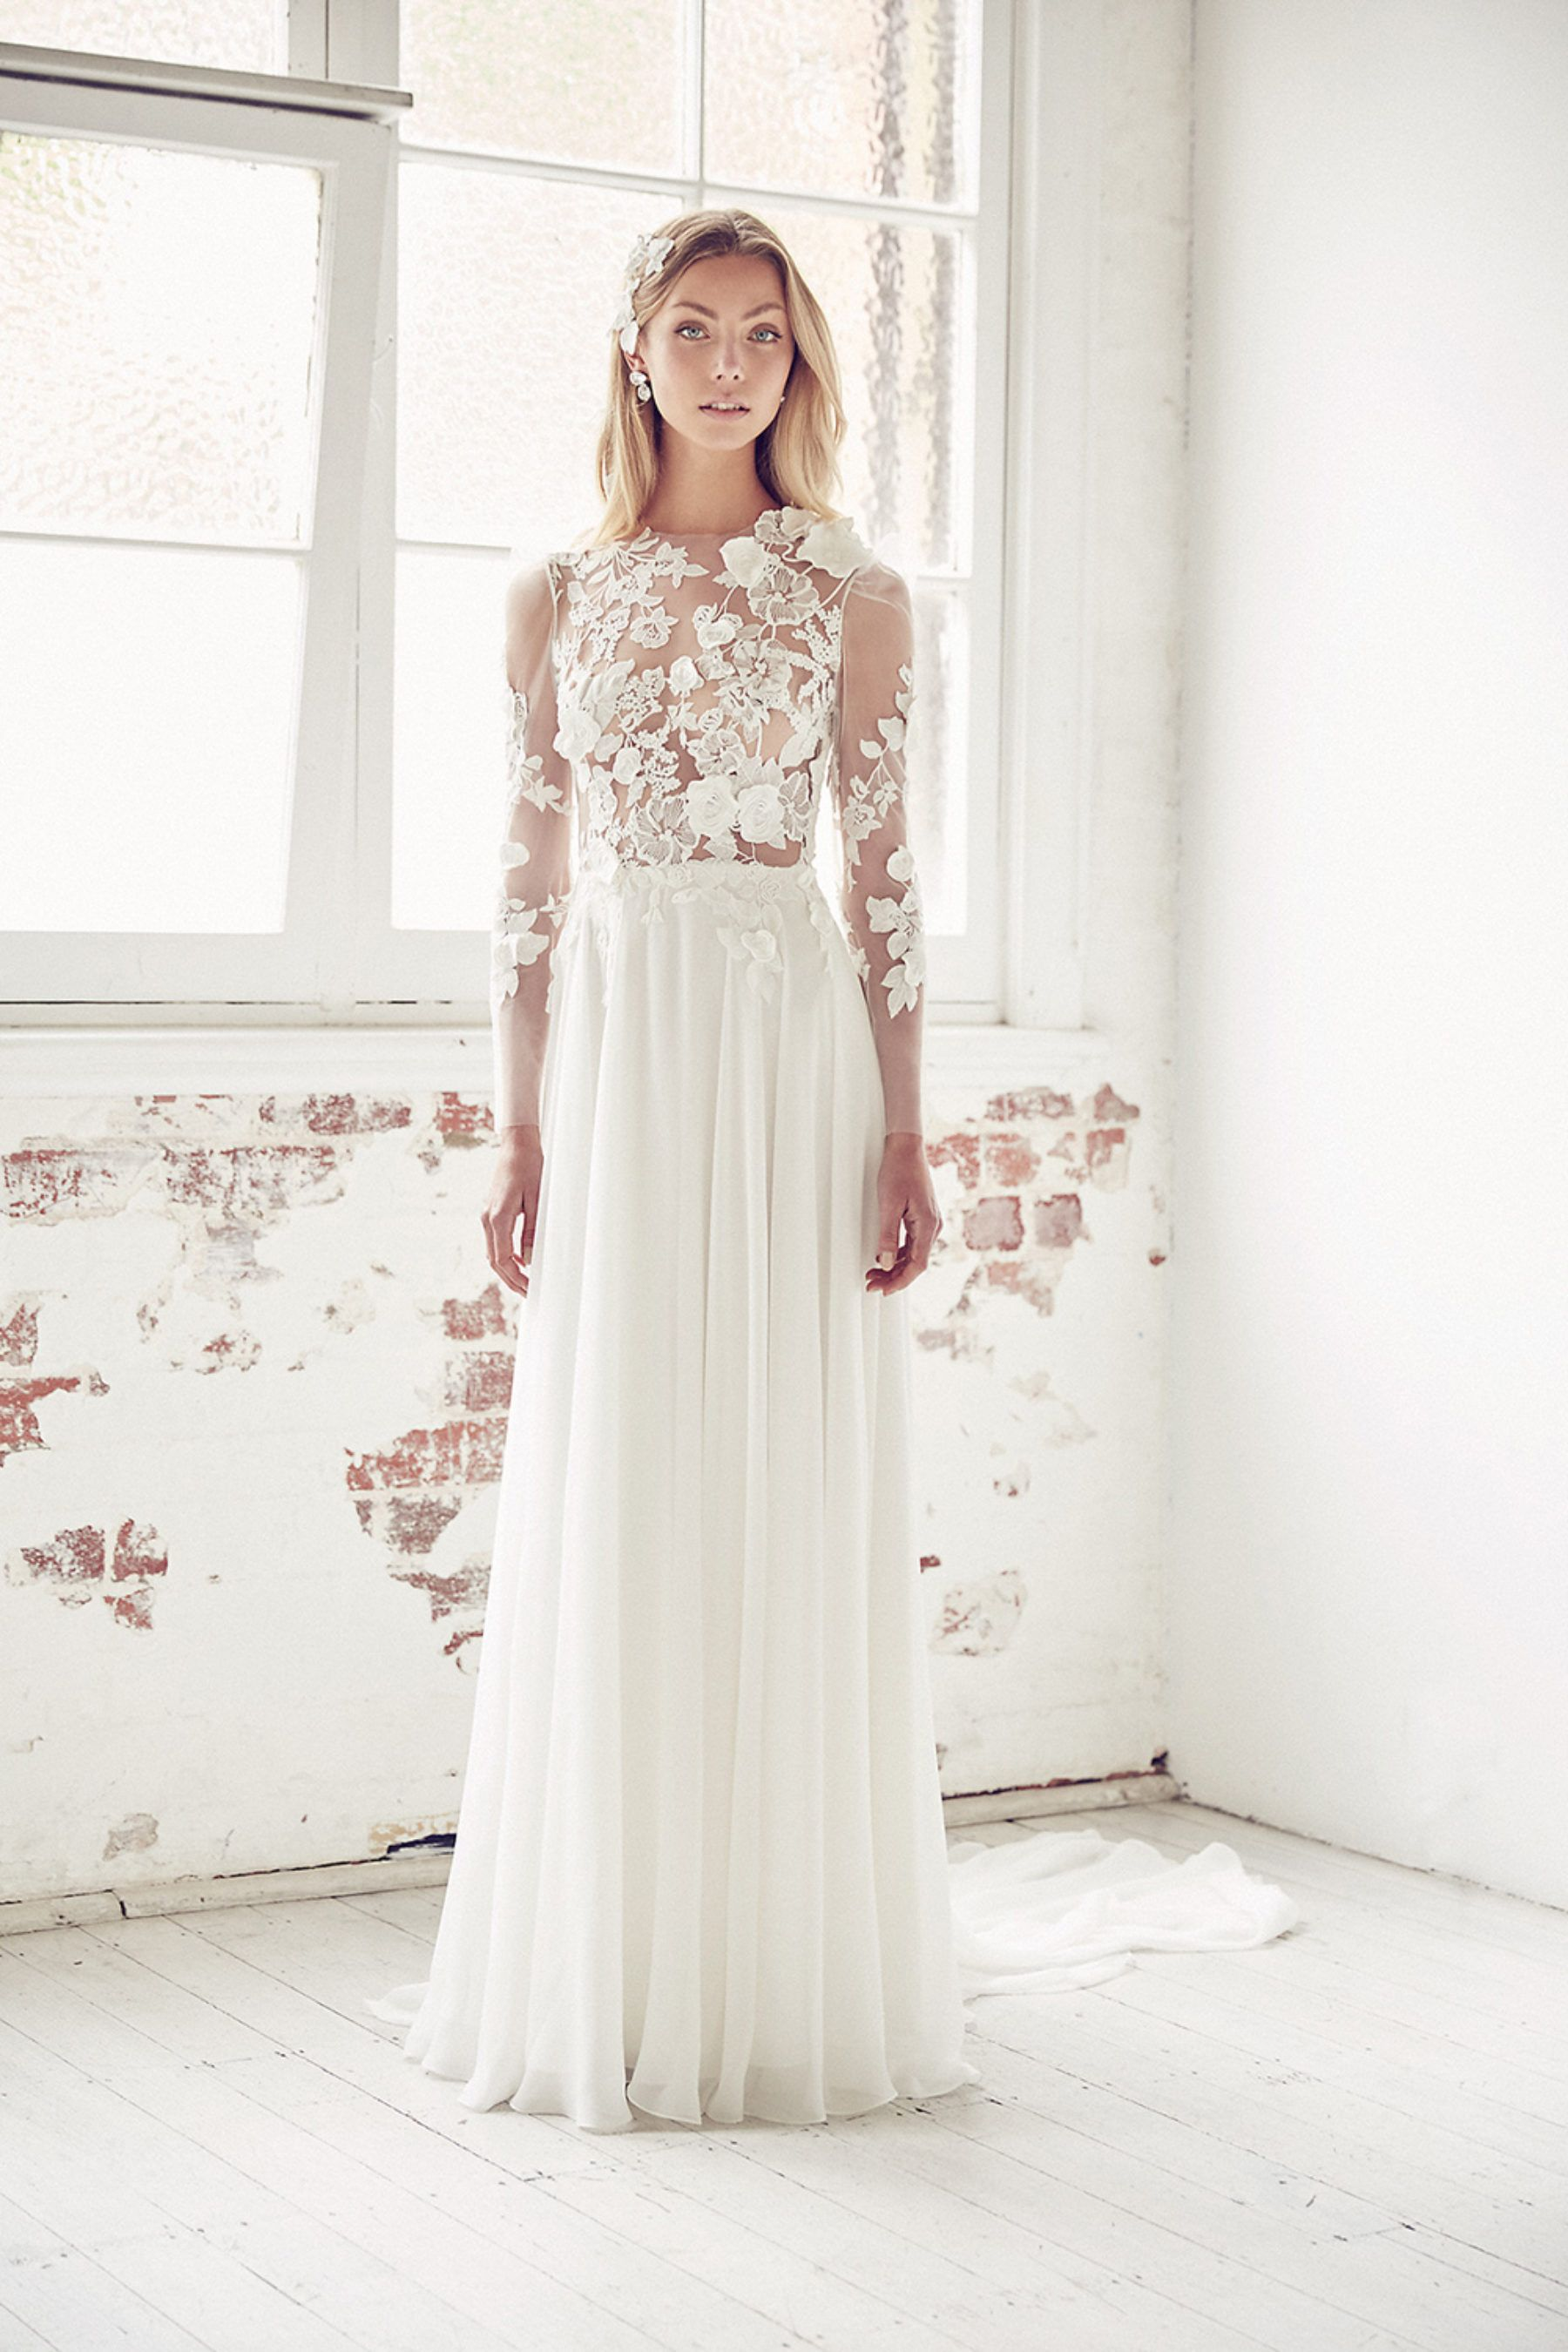 Illuminatiud bridal collection by suzanne harward in